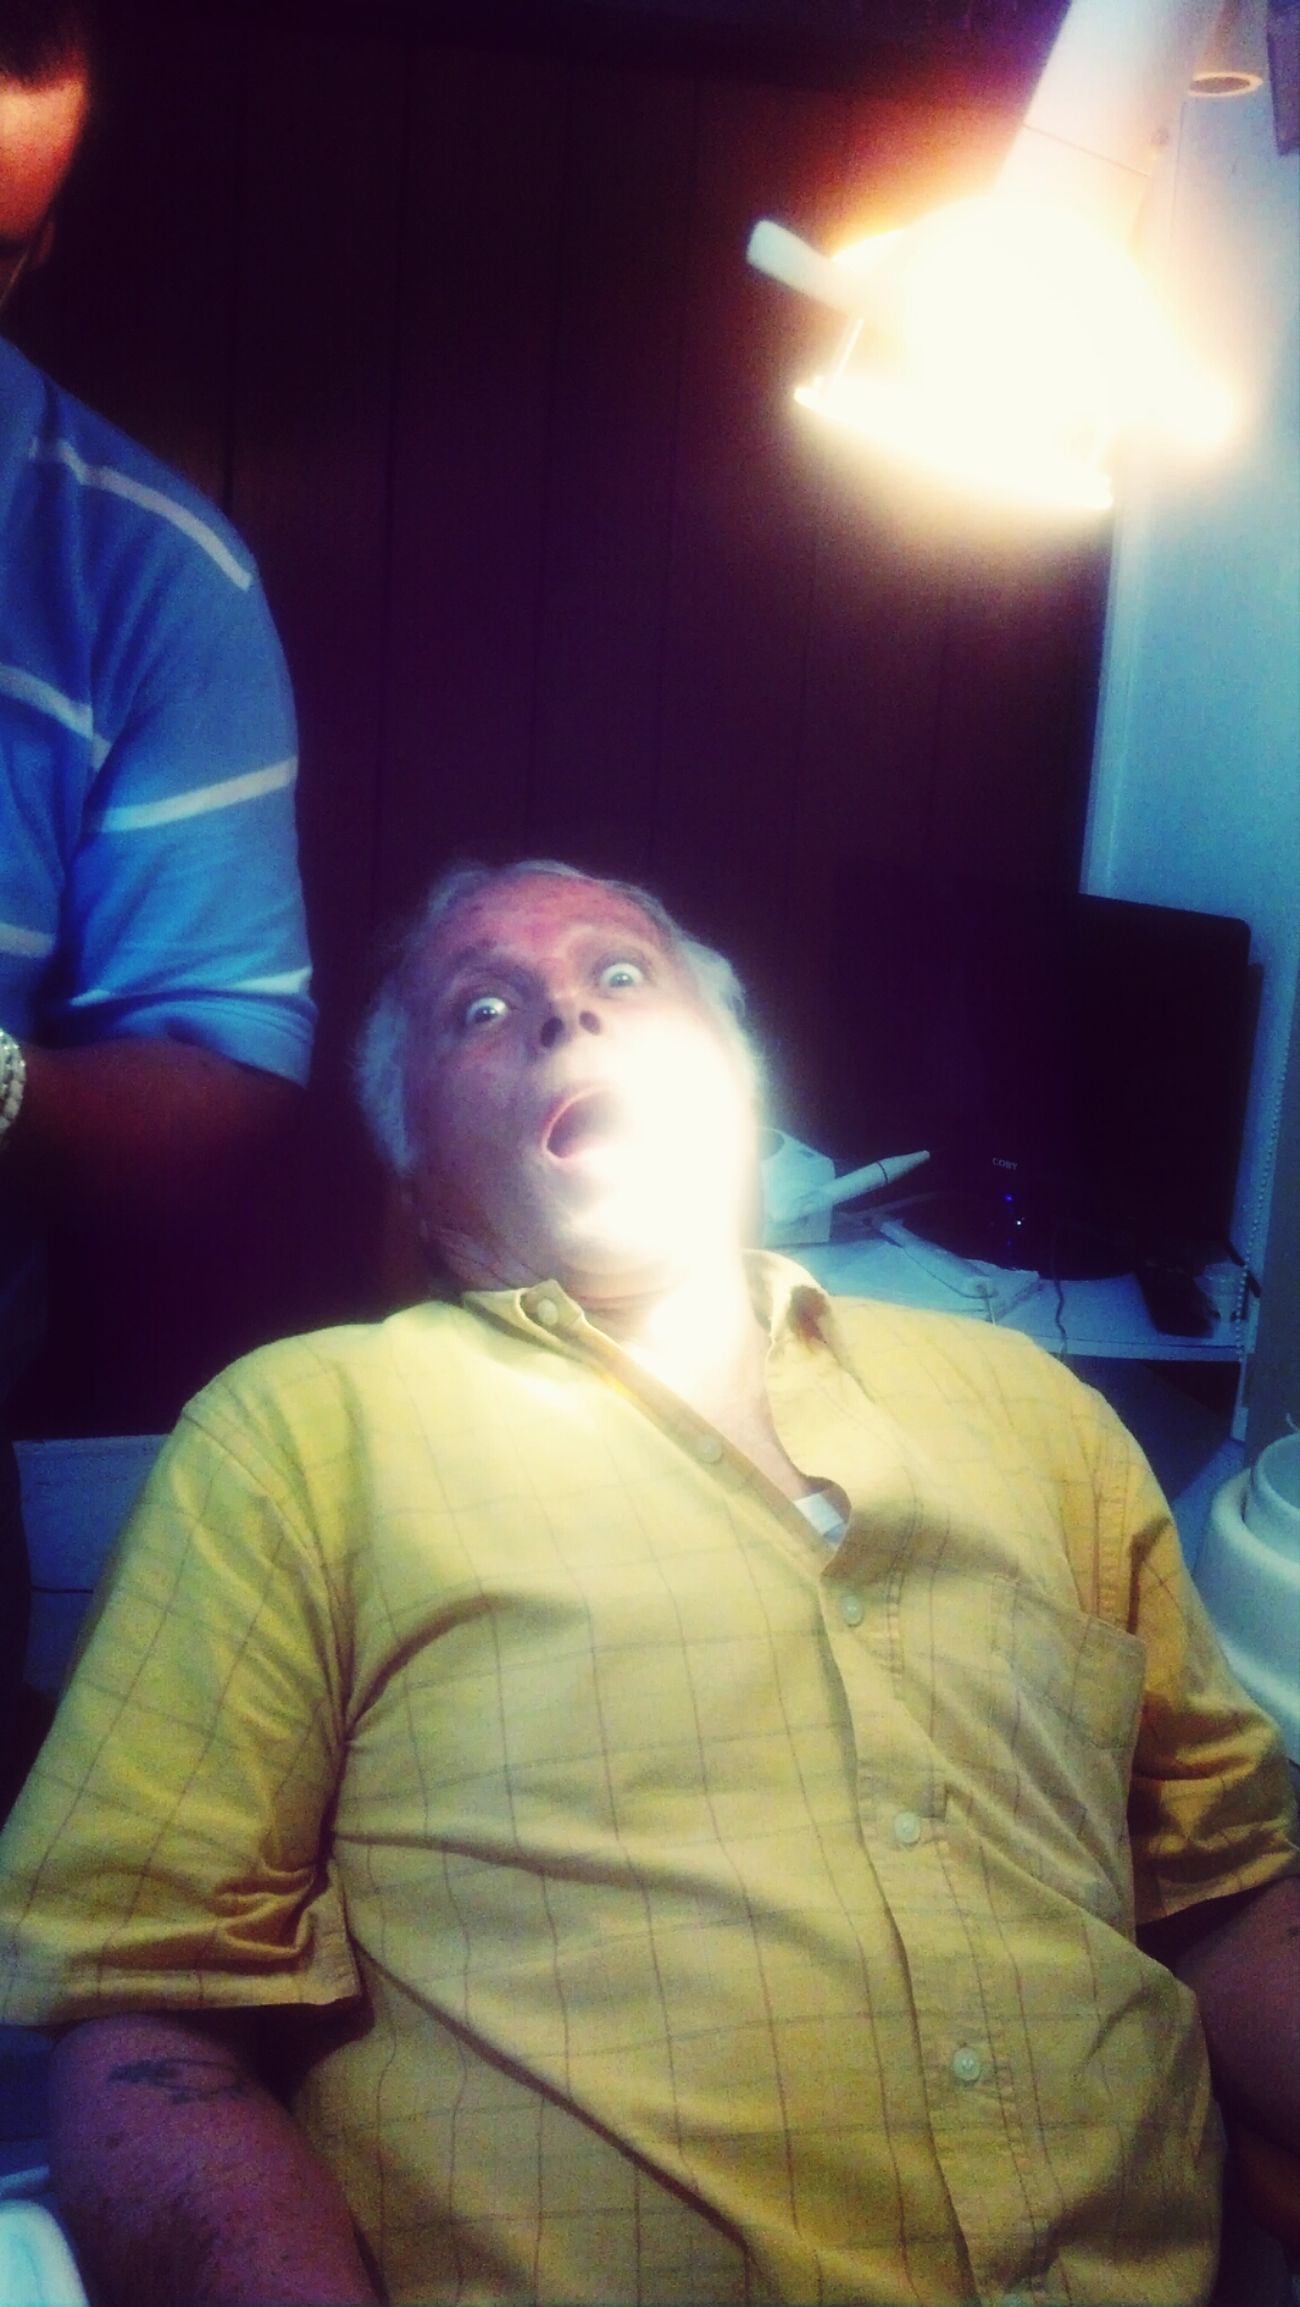 Ortodontist Grandpa Ni Pedo Dentista At The Dentist #crazyface